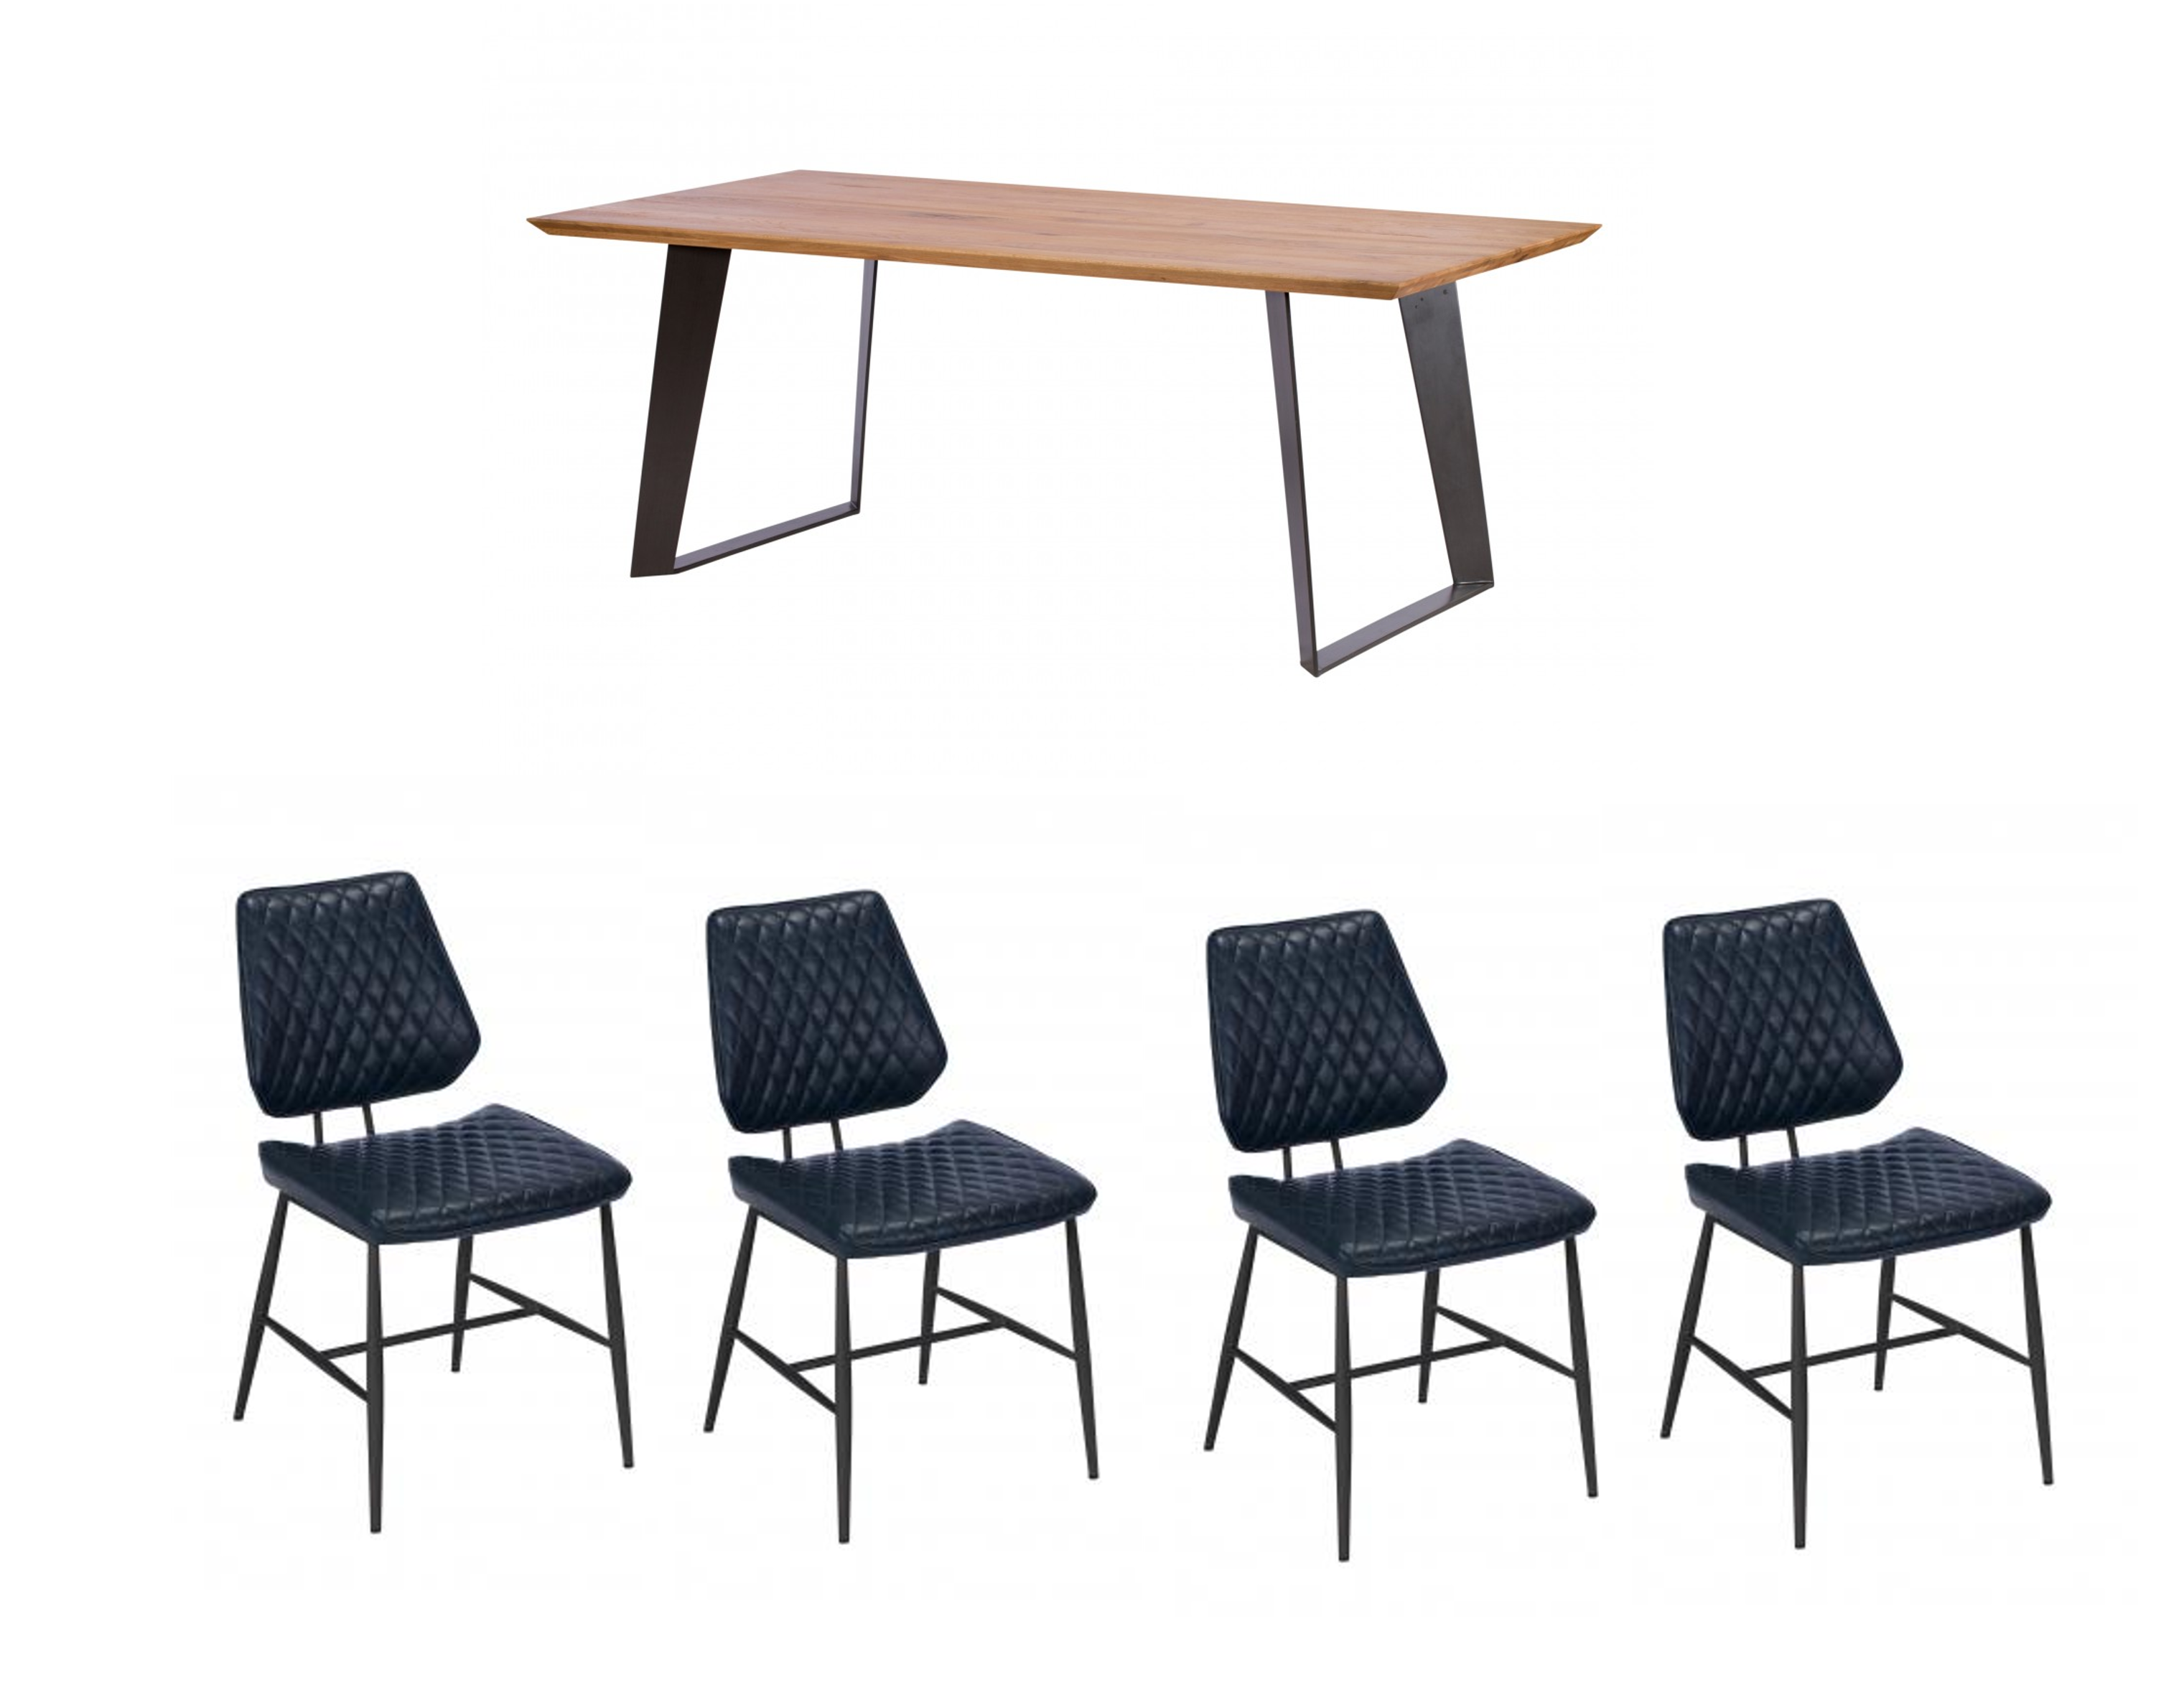 Hatton Dining Table + 4 chairs